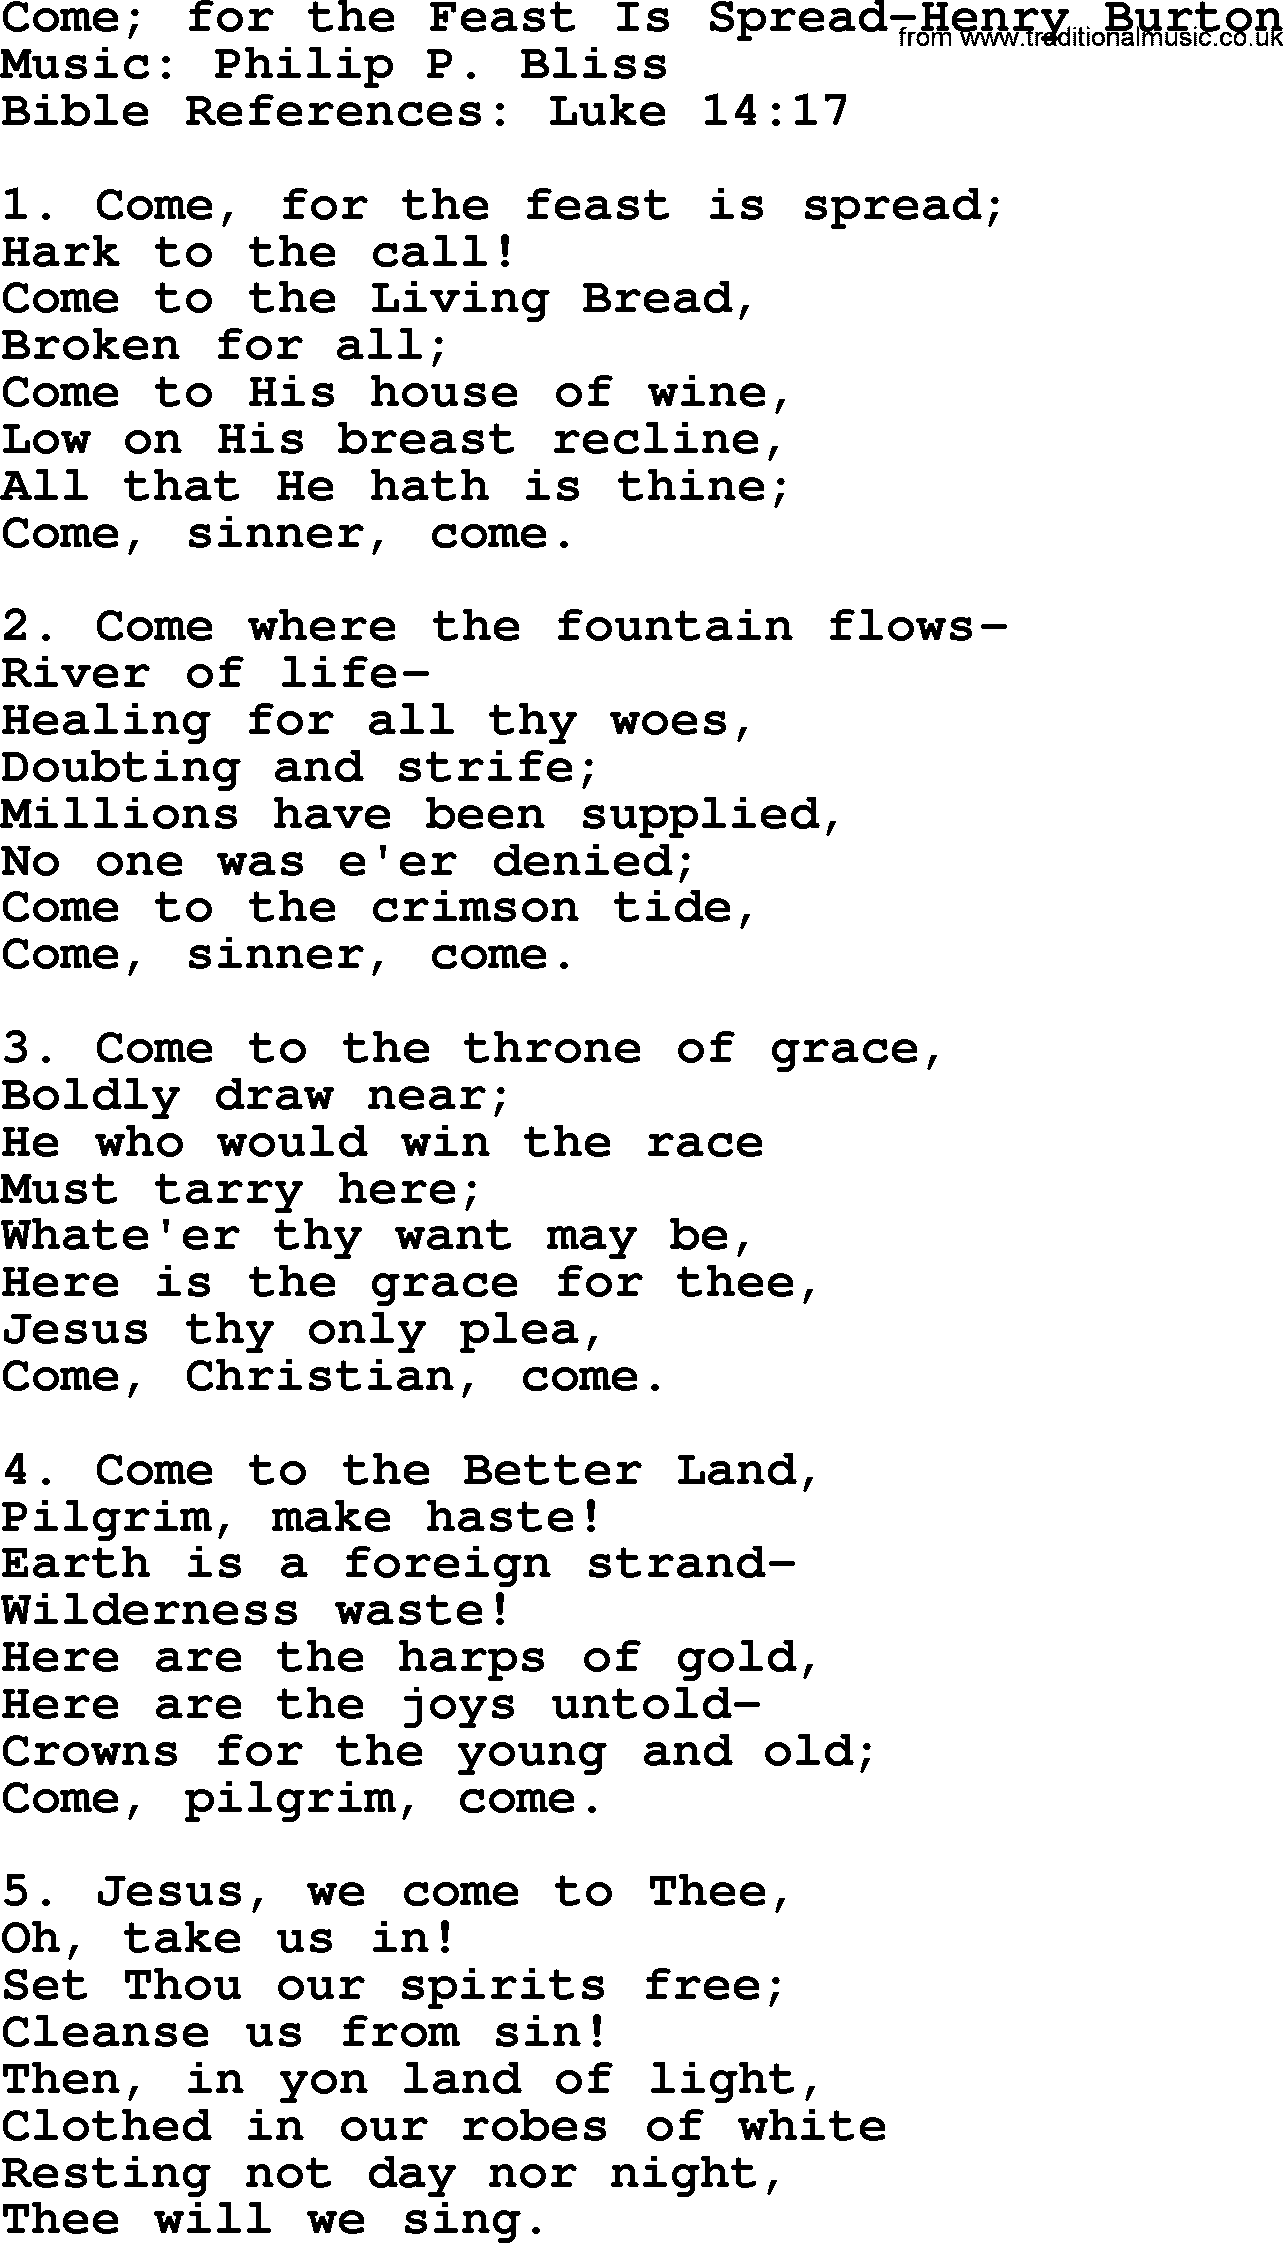 come to the feast pdf